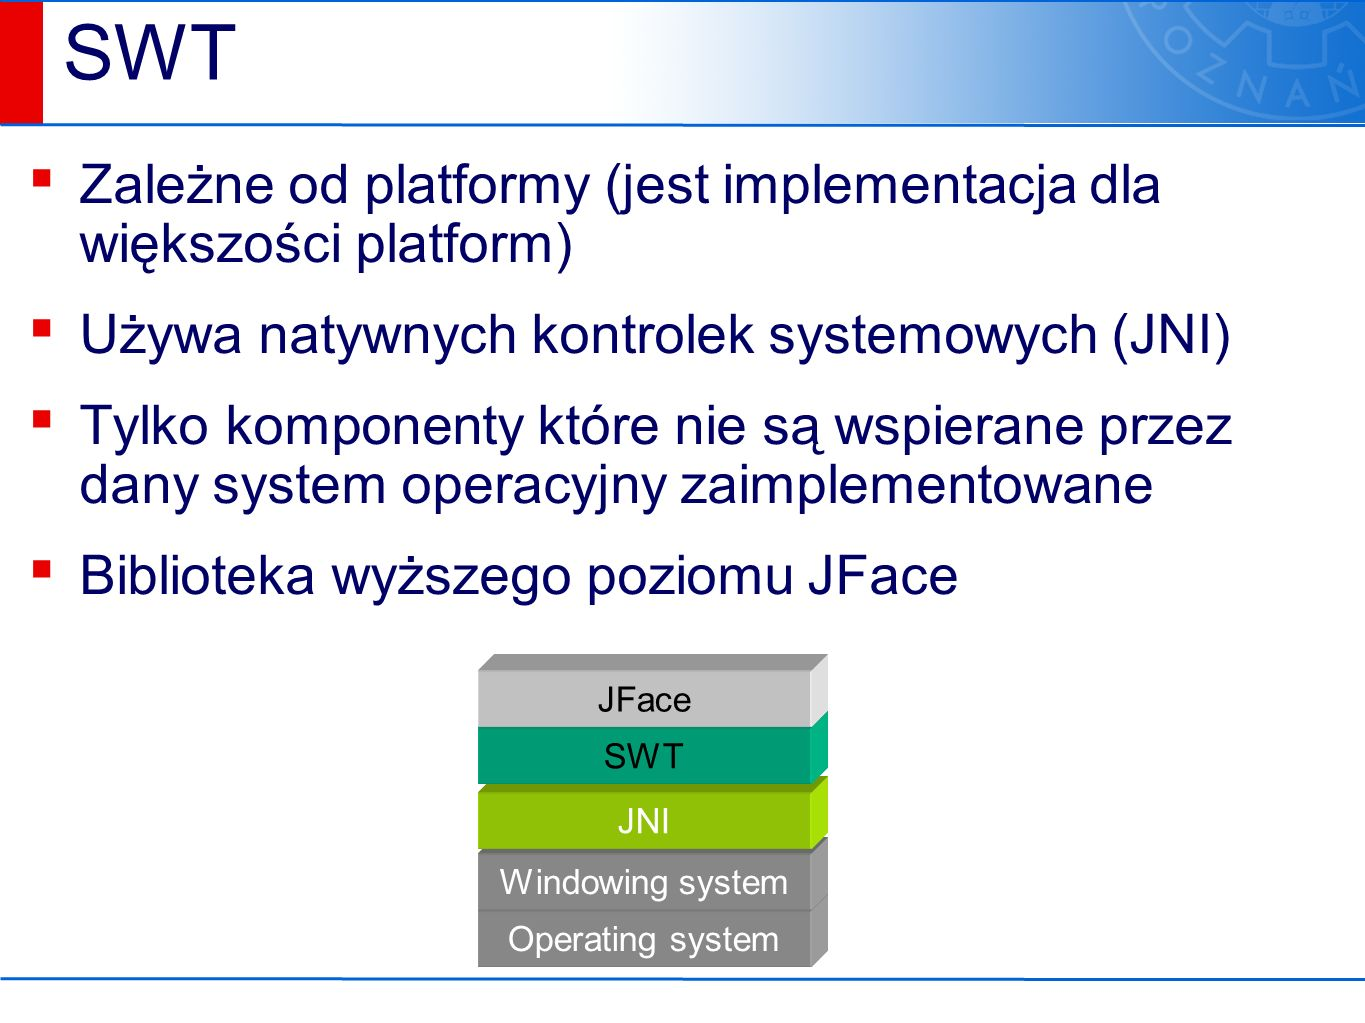 Operating system Windowing system JNI SWT vs.